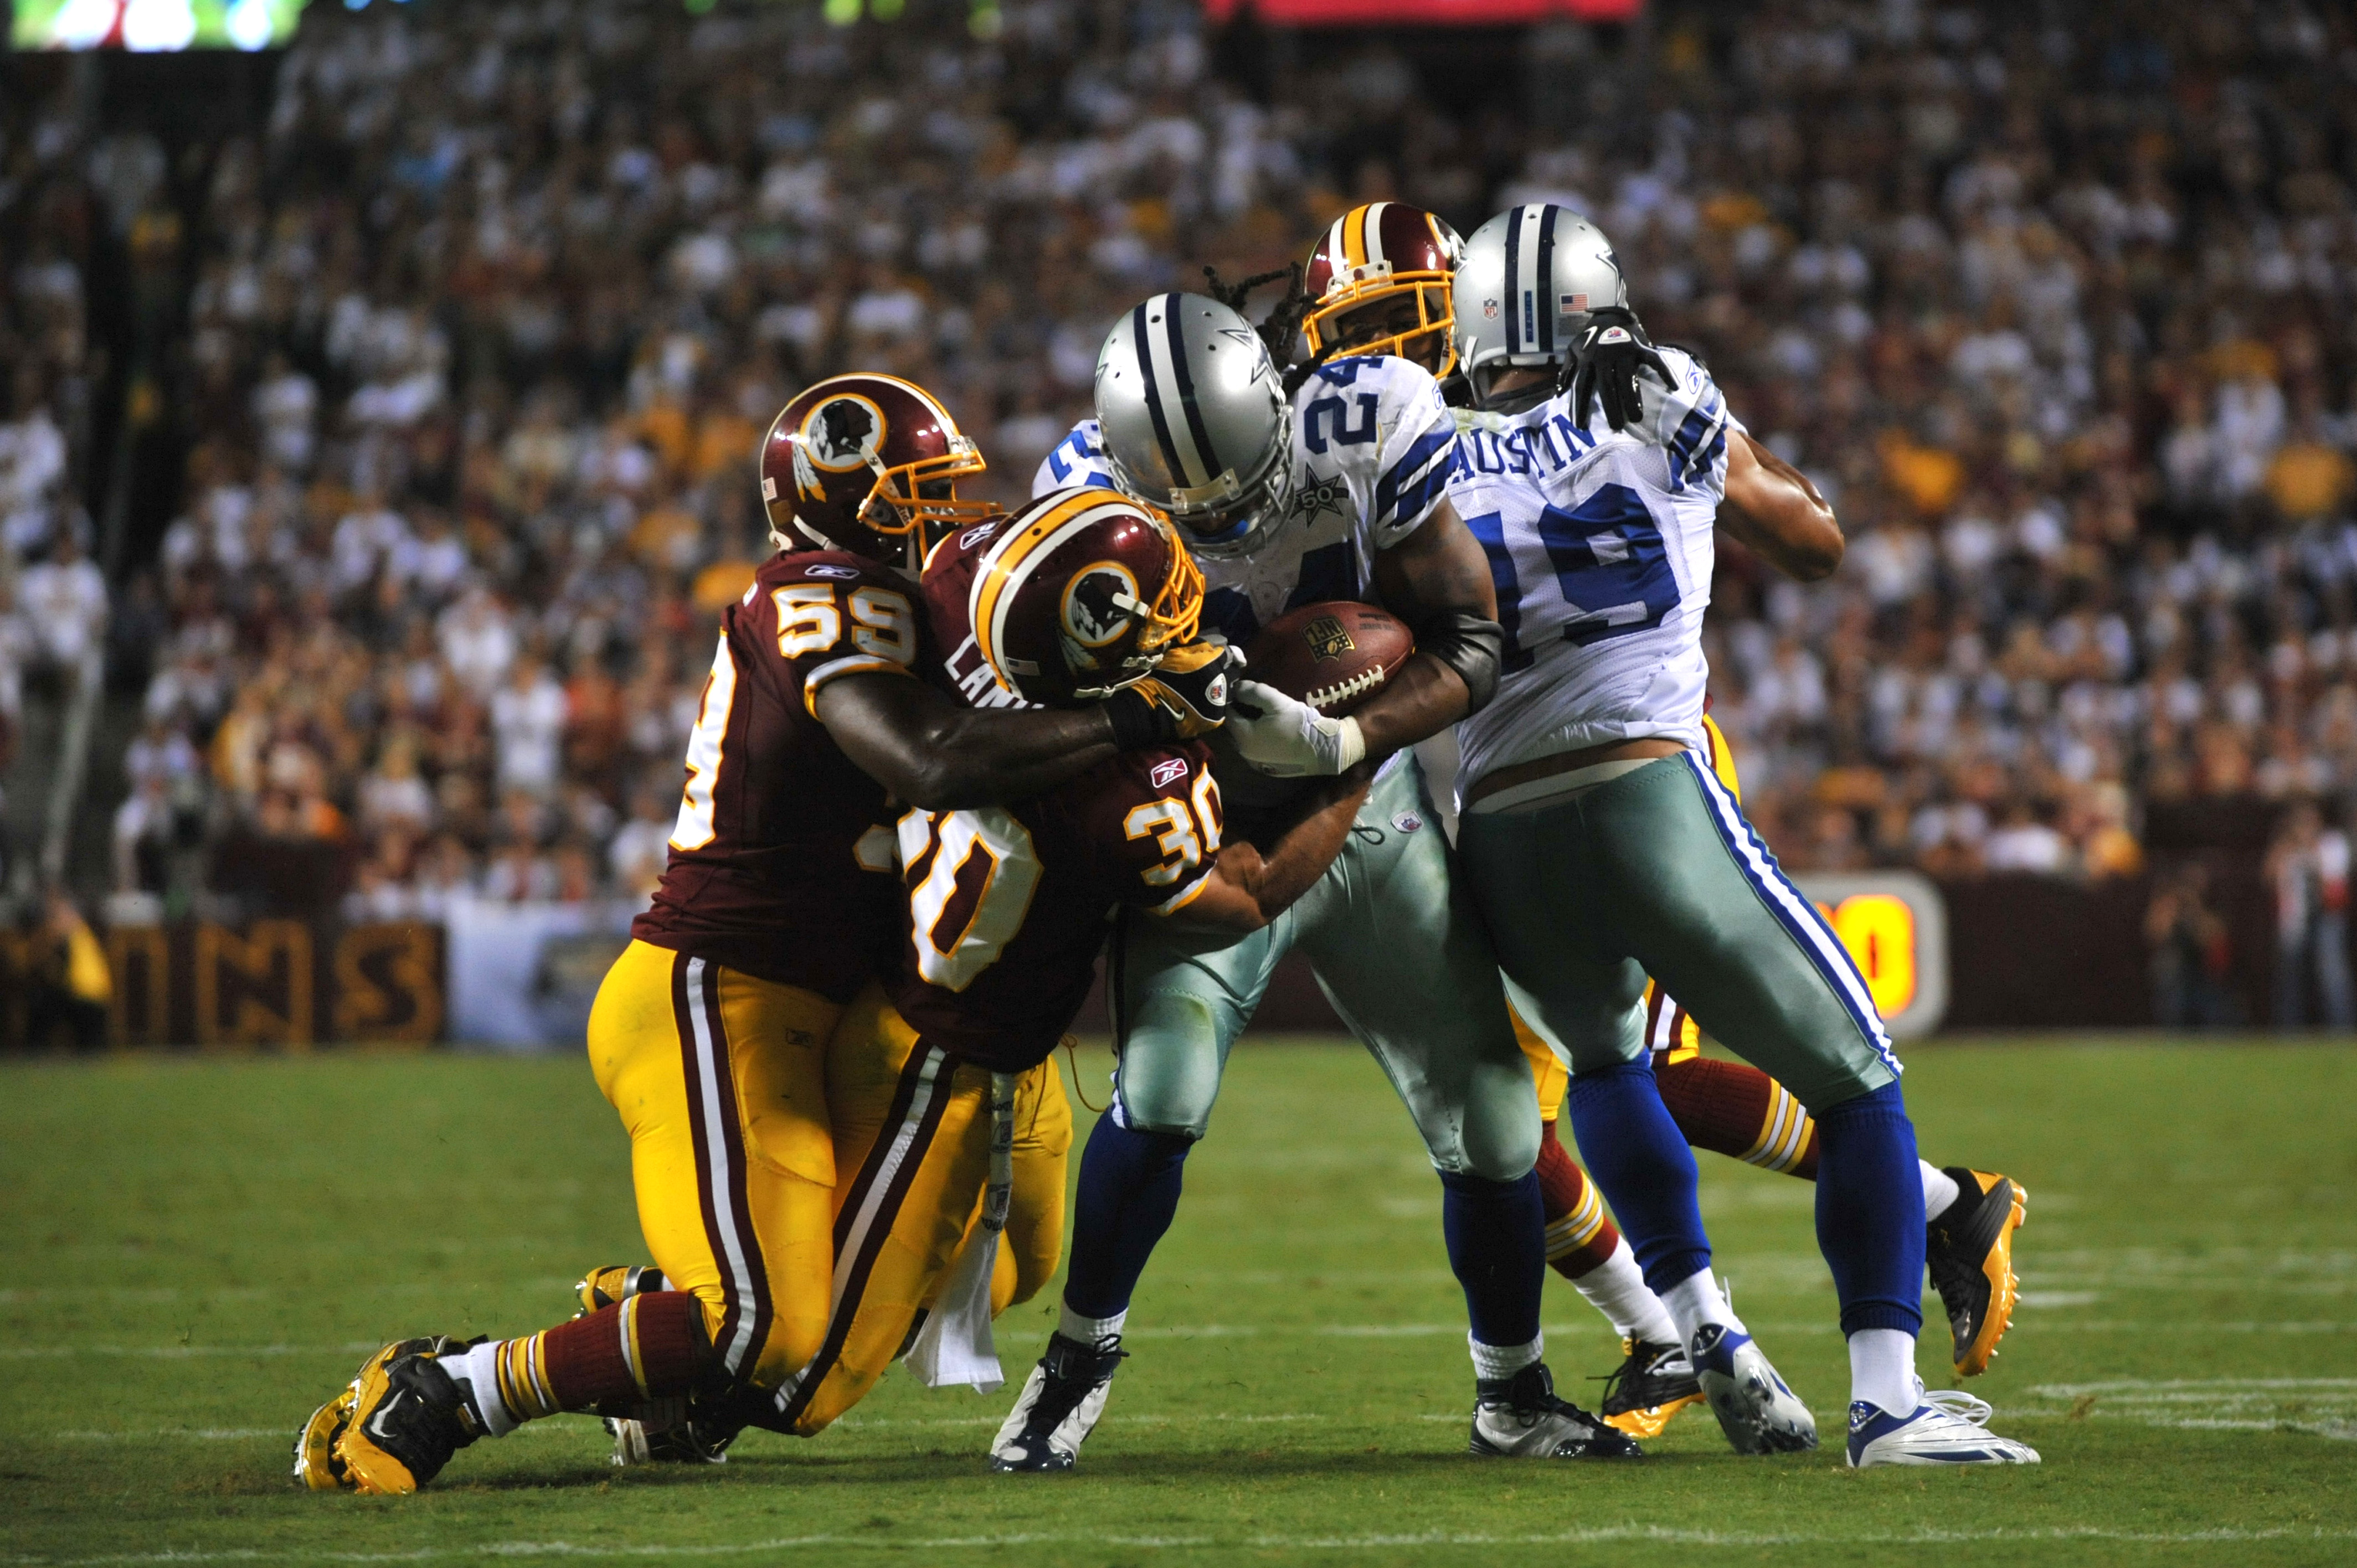 LANDOVER - SEPTEMBER 12:  London Fletcher #59 of the Washington Redskins makes a tackle during the NFL season opener against the Dallas Cowboys at FedExField on September 12, 2010 in Landover, Maryland. The Redskins defeated the Cowboys 13-7. (Photo by La